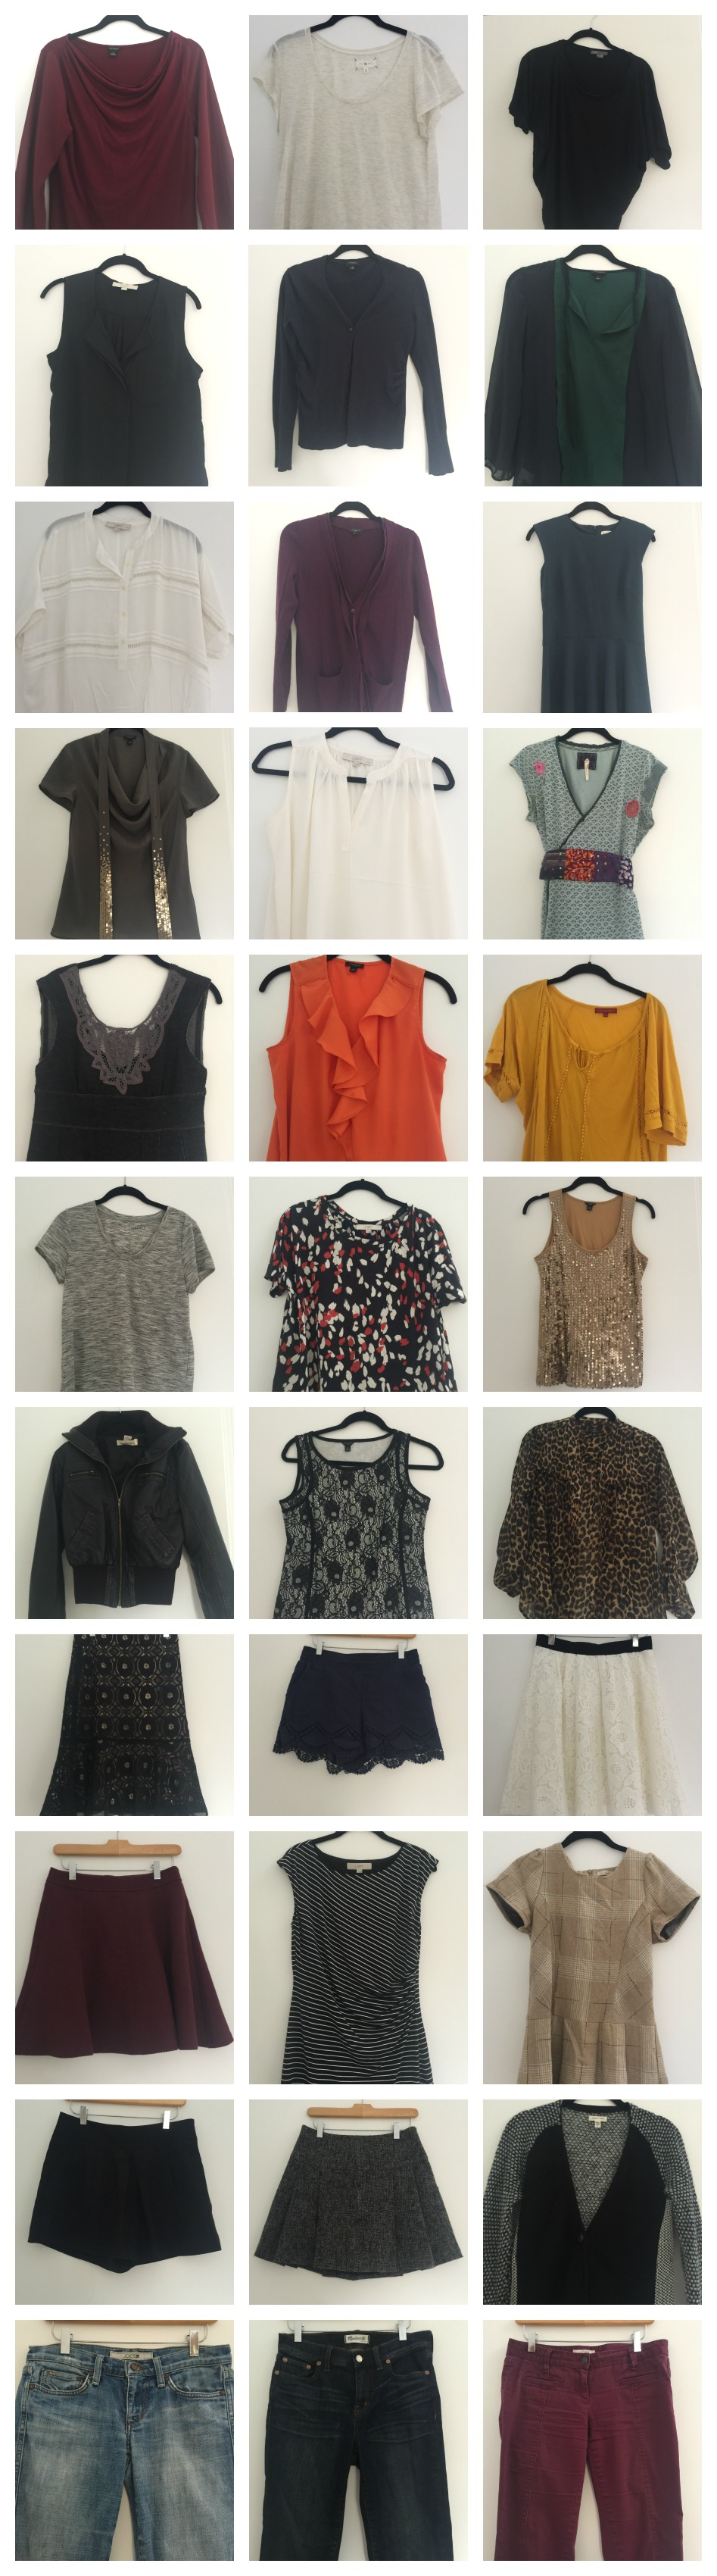 Fall capsule wardrobe- 33 pieces